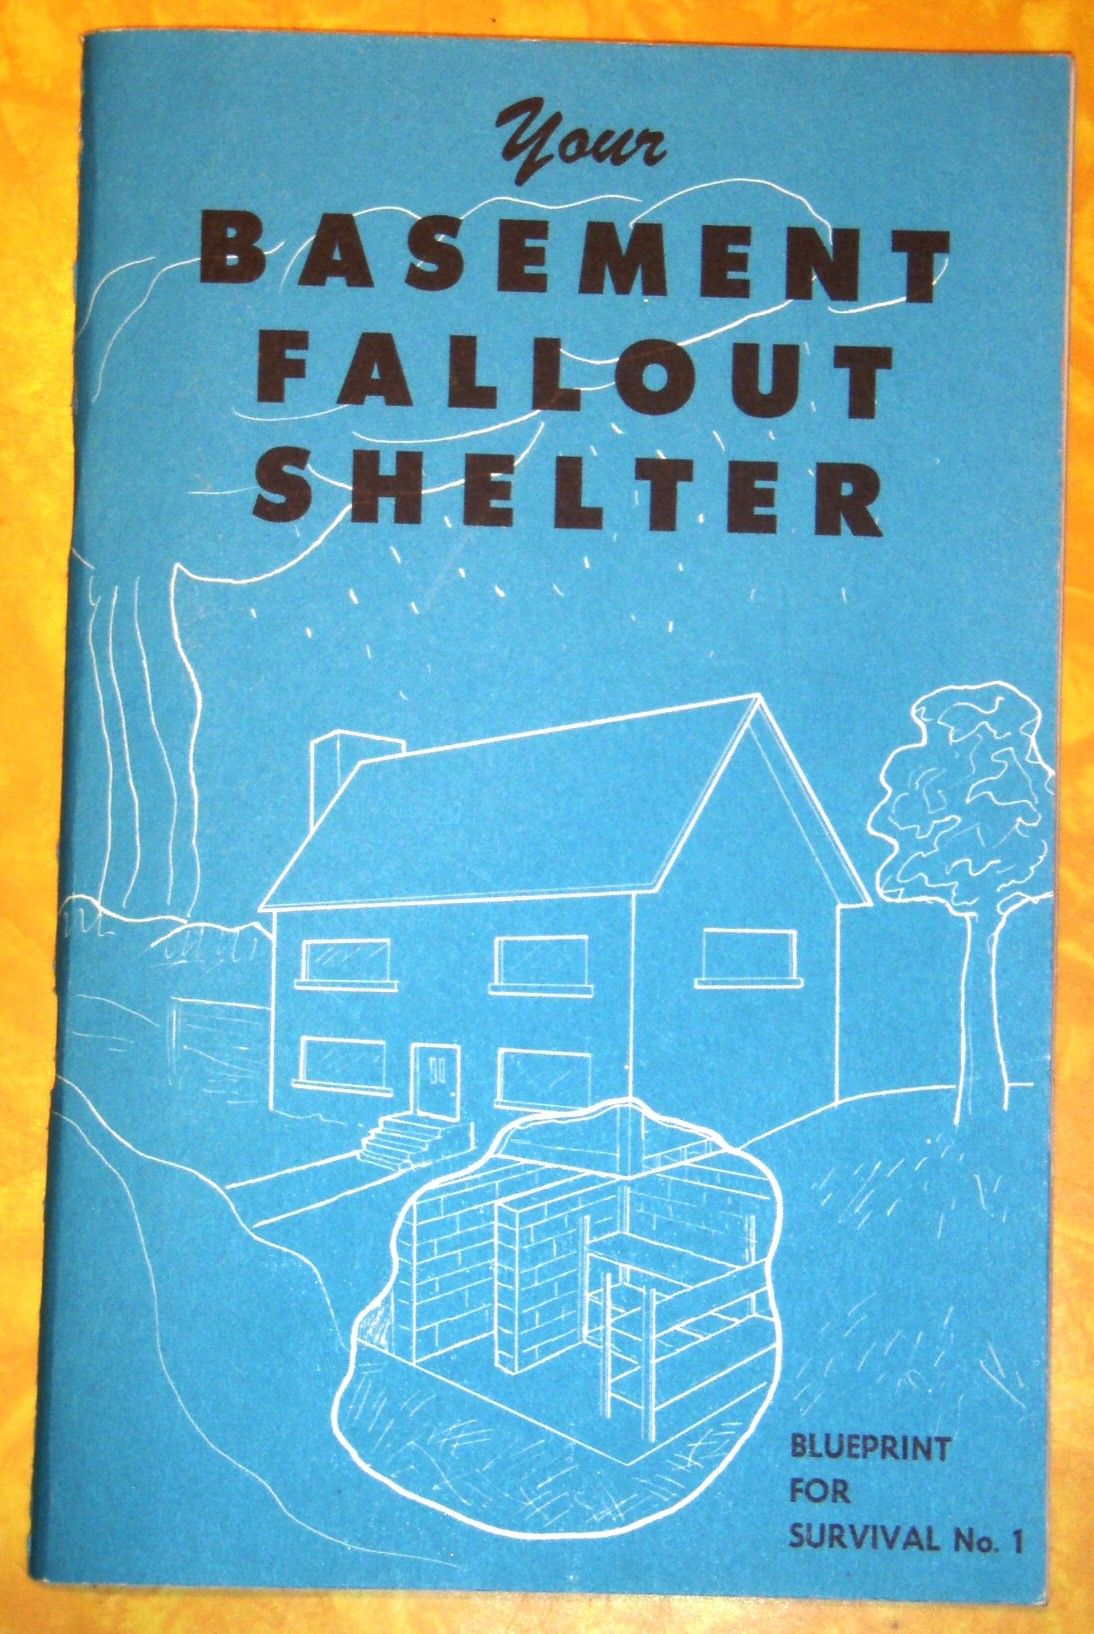 Prepper your basement fallout shelter blueprint for survival no prepper your basement fallout shelter blueprint for survival no1 pdf malvernweather Images